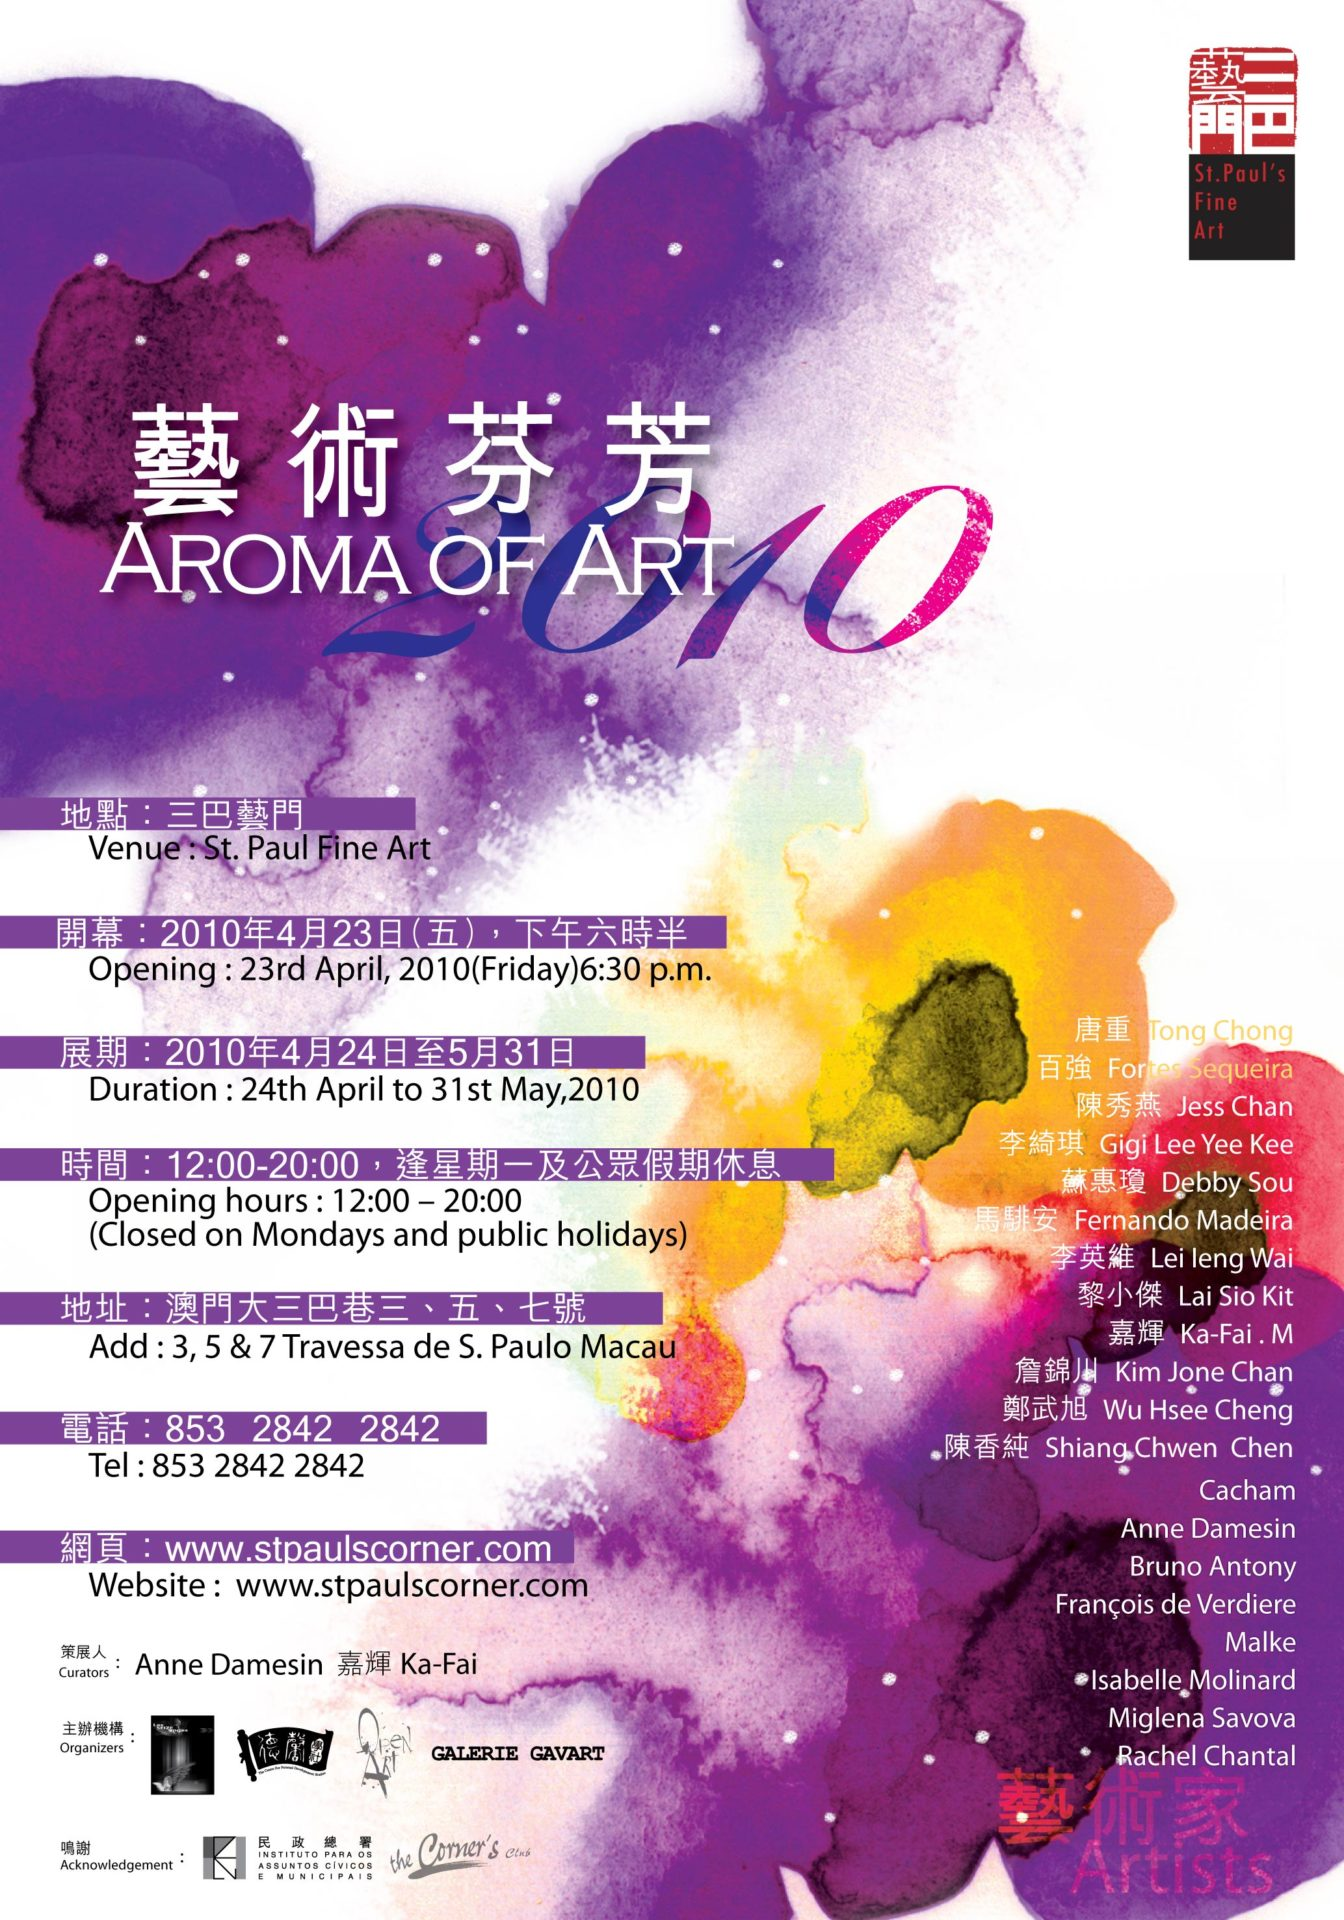 exposition aroma of art, macao, chine, 23.04 - 31.05.2010